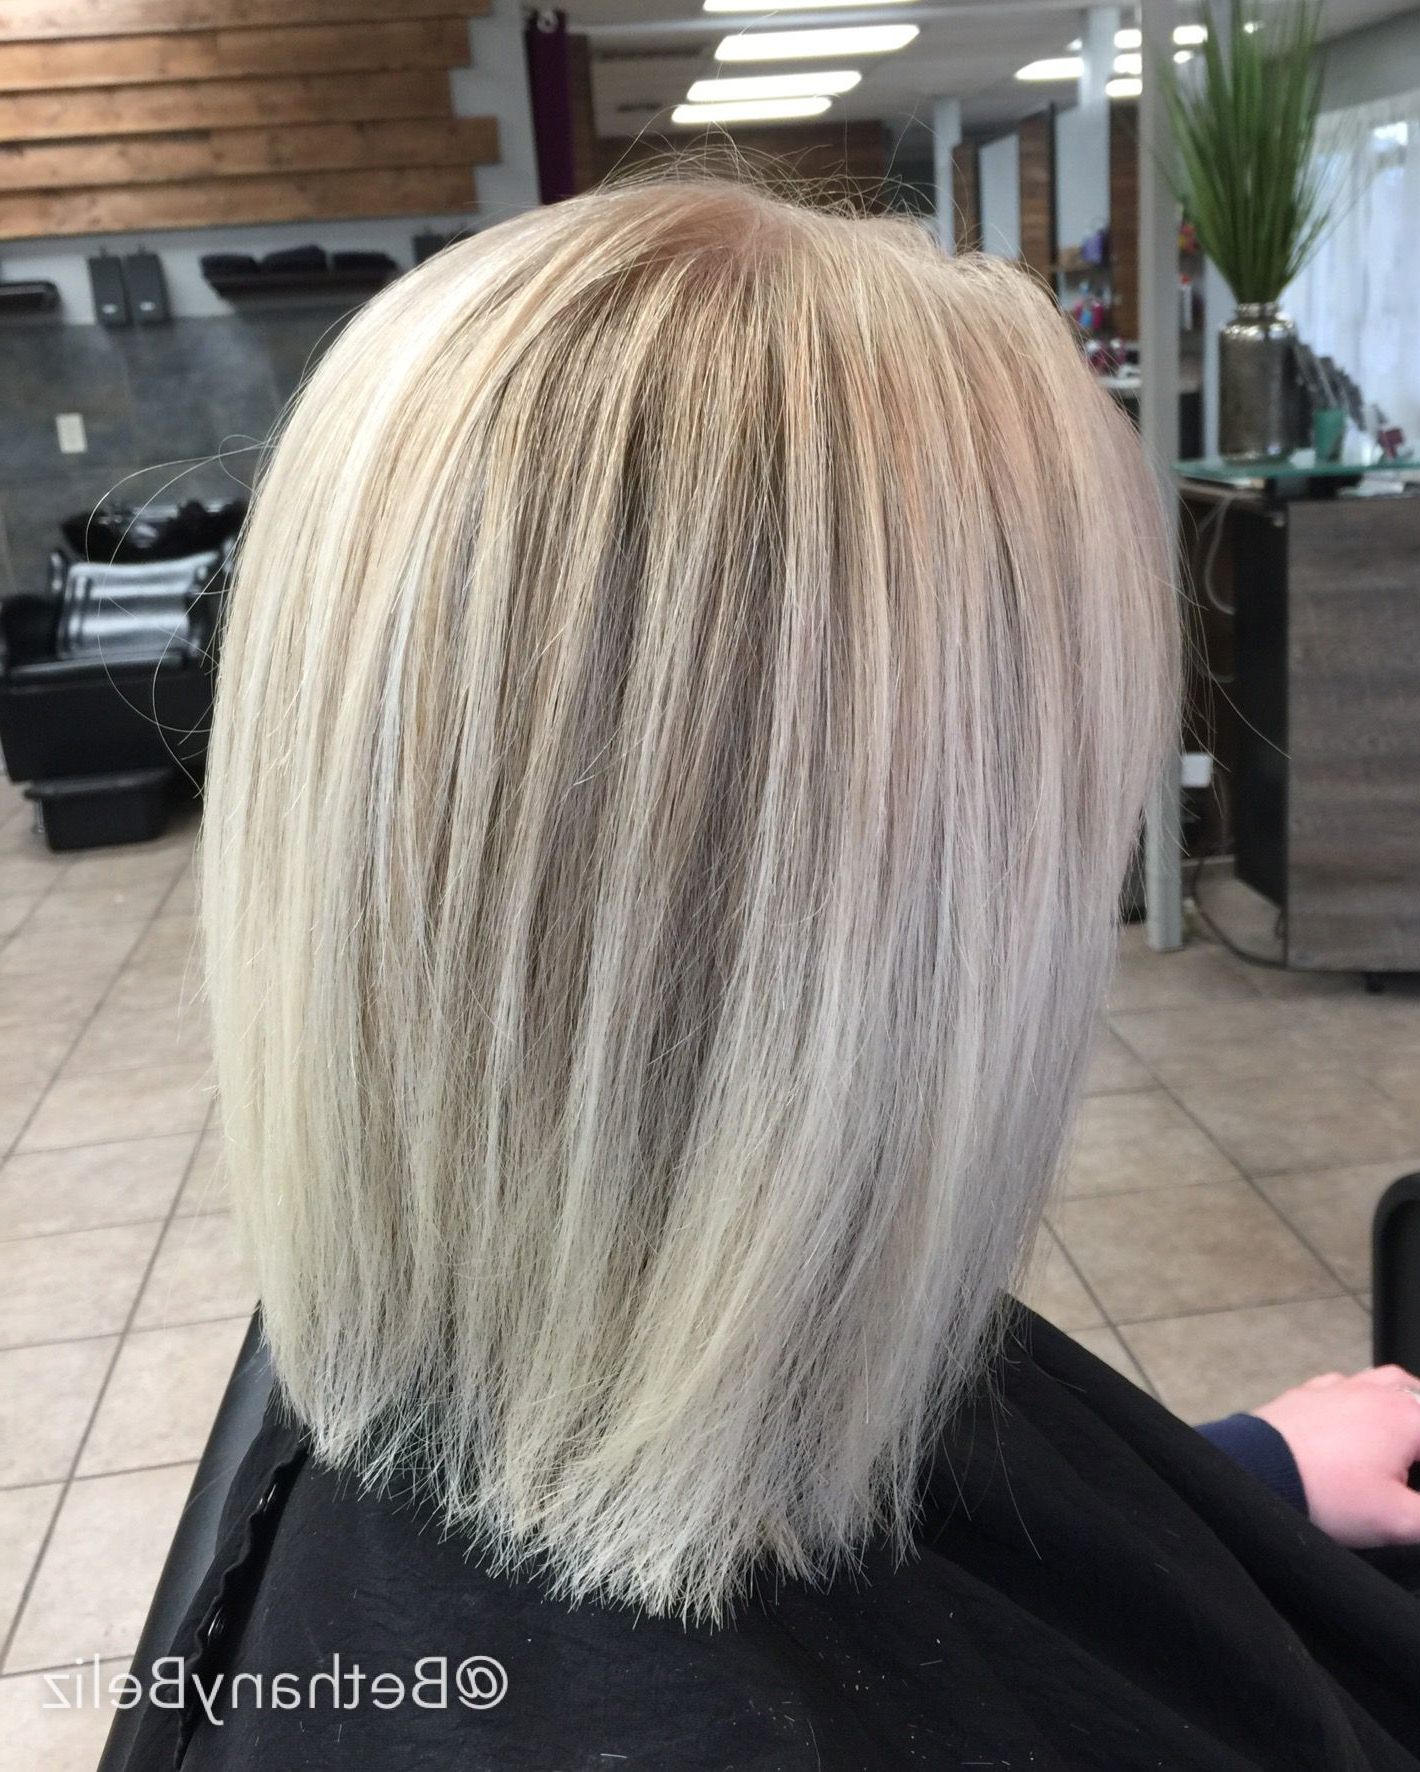 Balayage And Highlights With Icy White Ends Along With A Within Balayage Highlights For Long Bob Hairstyles (View 6 of 20)